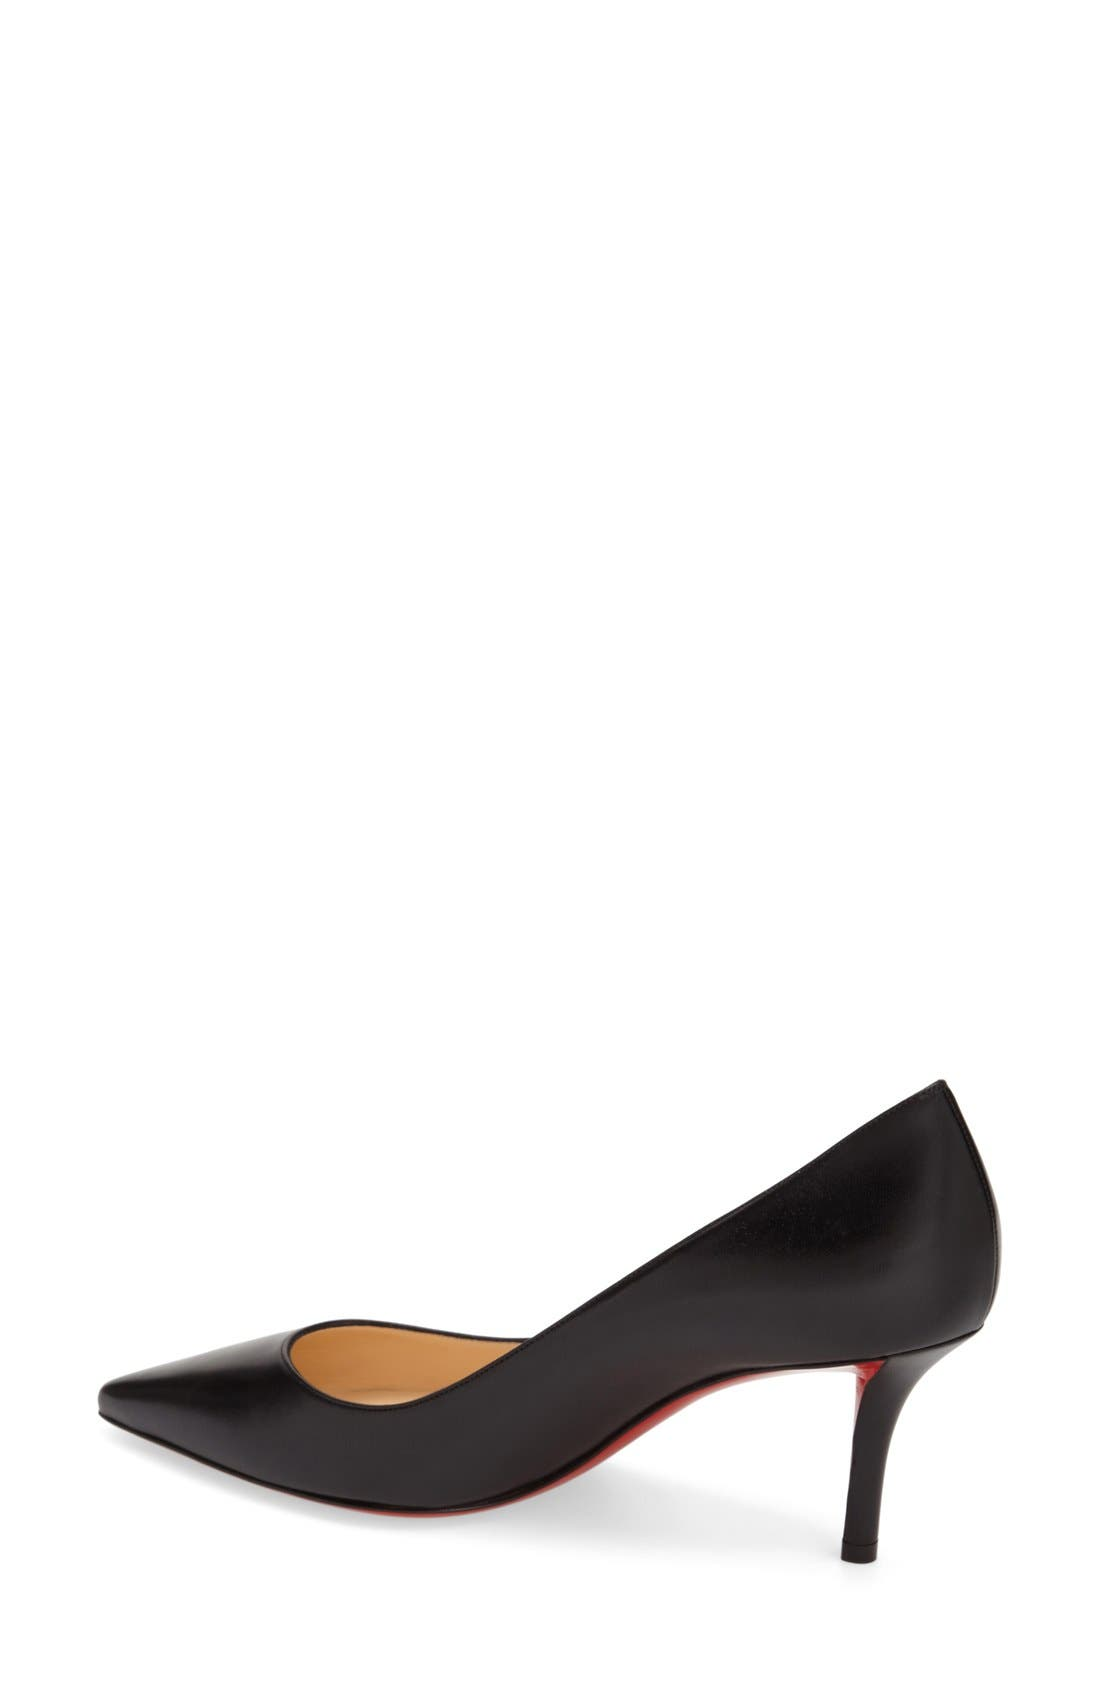 'Apostrophy' Pointy Toe Pump,                             Alternate thumbnail 3, color,                             001